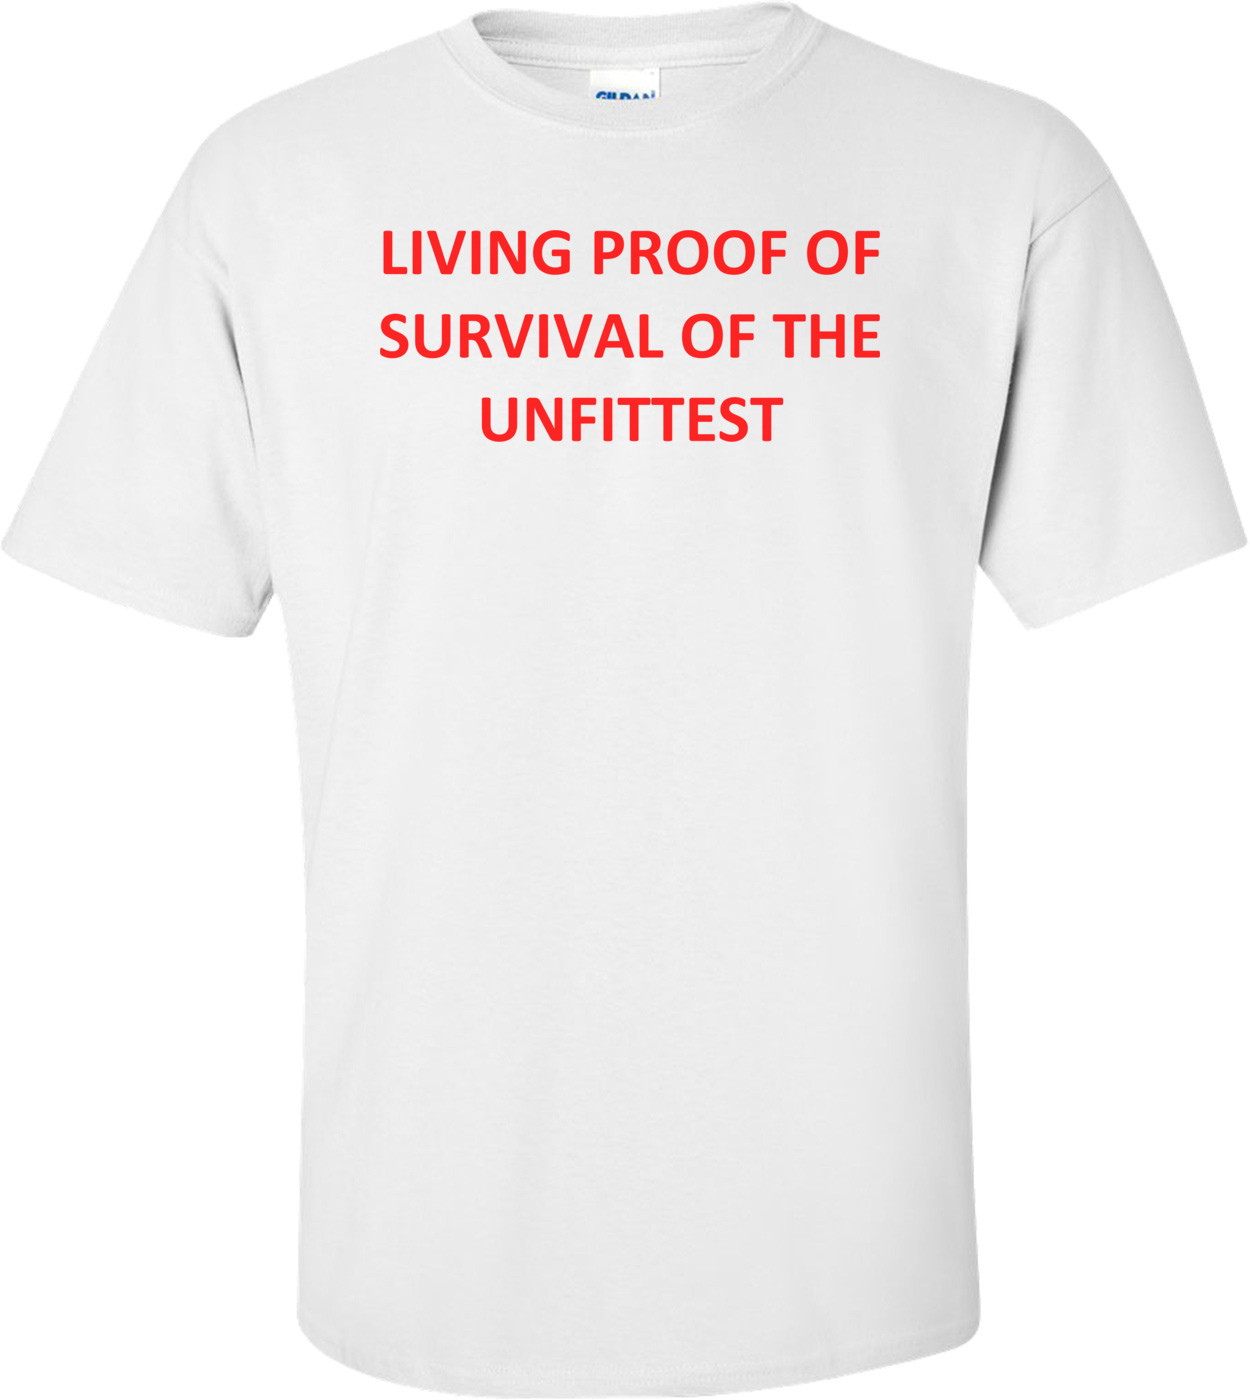 LIVING PROOF OF SURVIVAL OF THE UNFITTEST Shirt